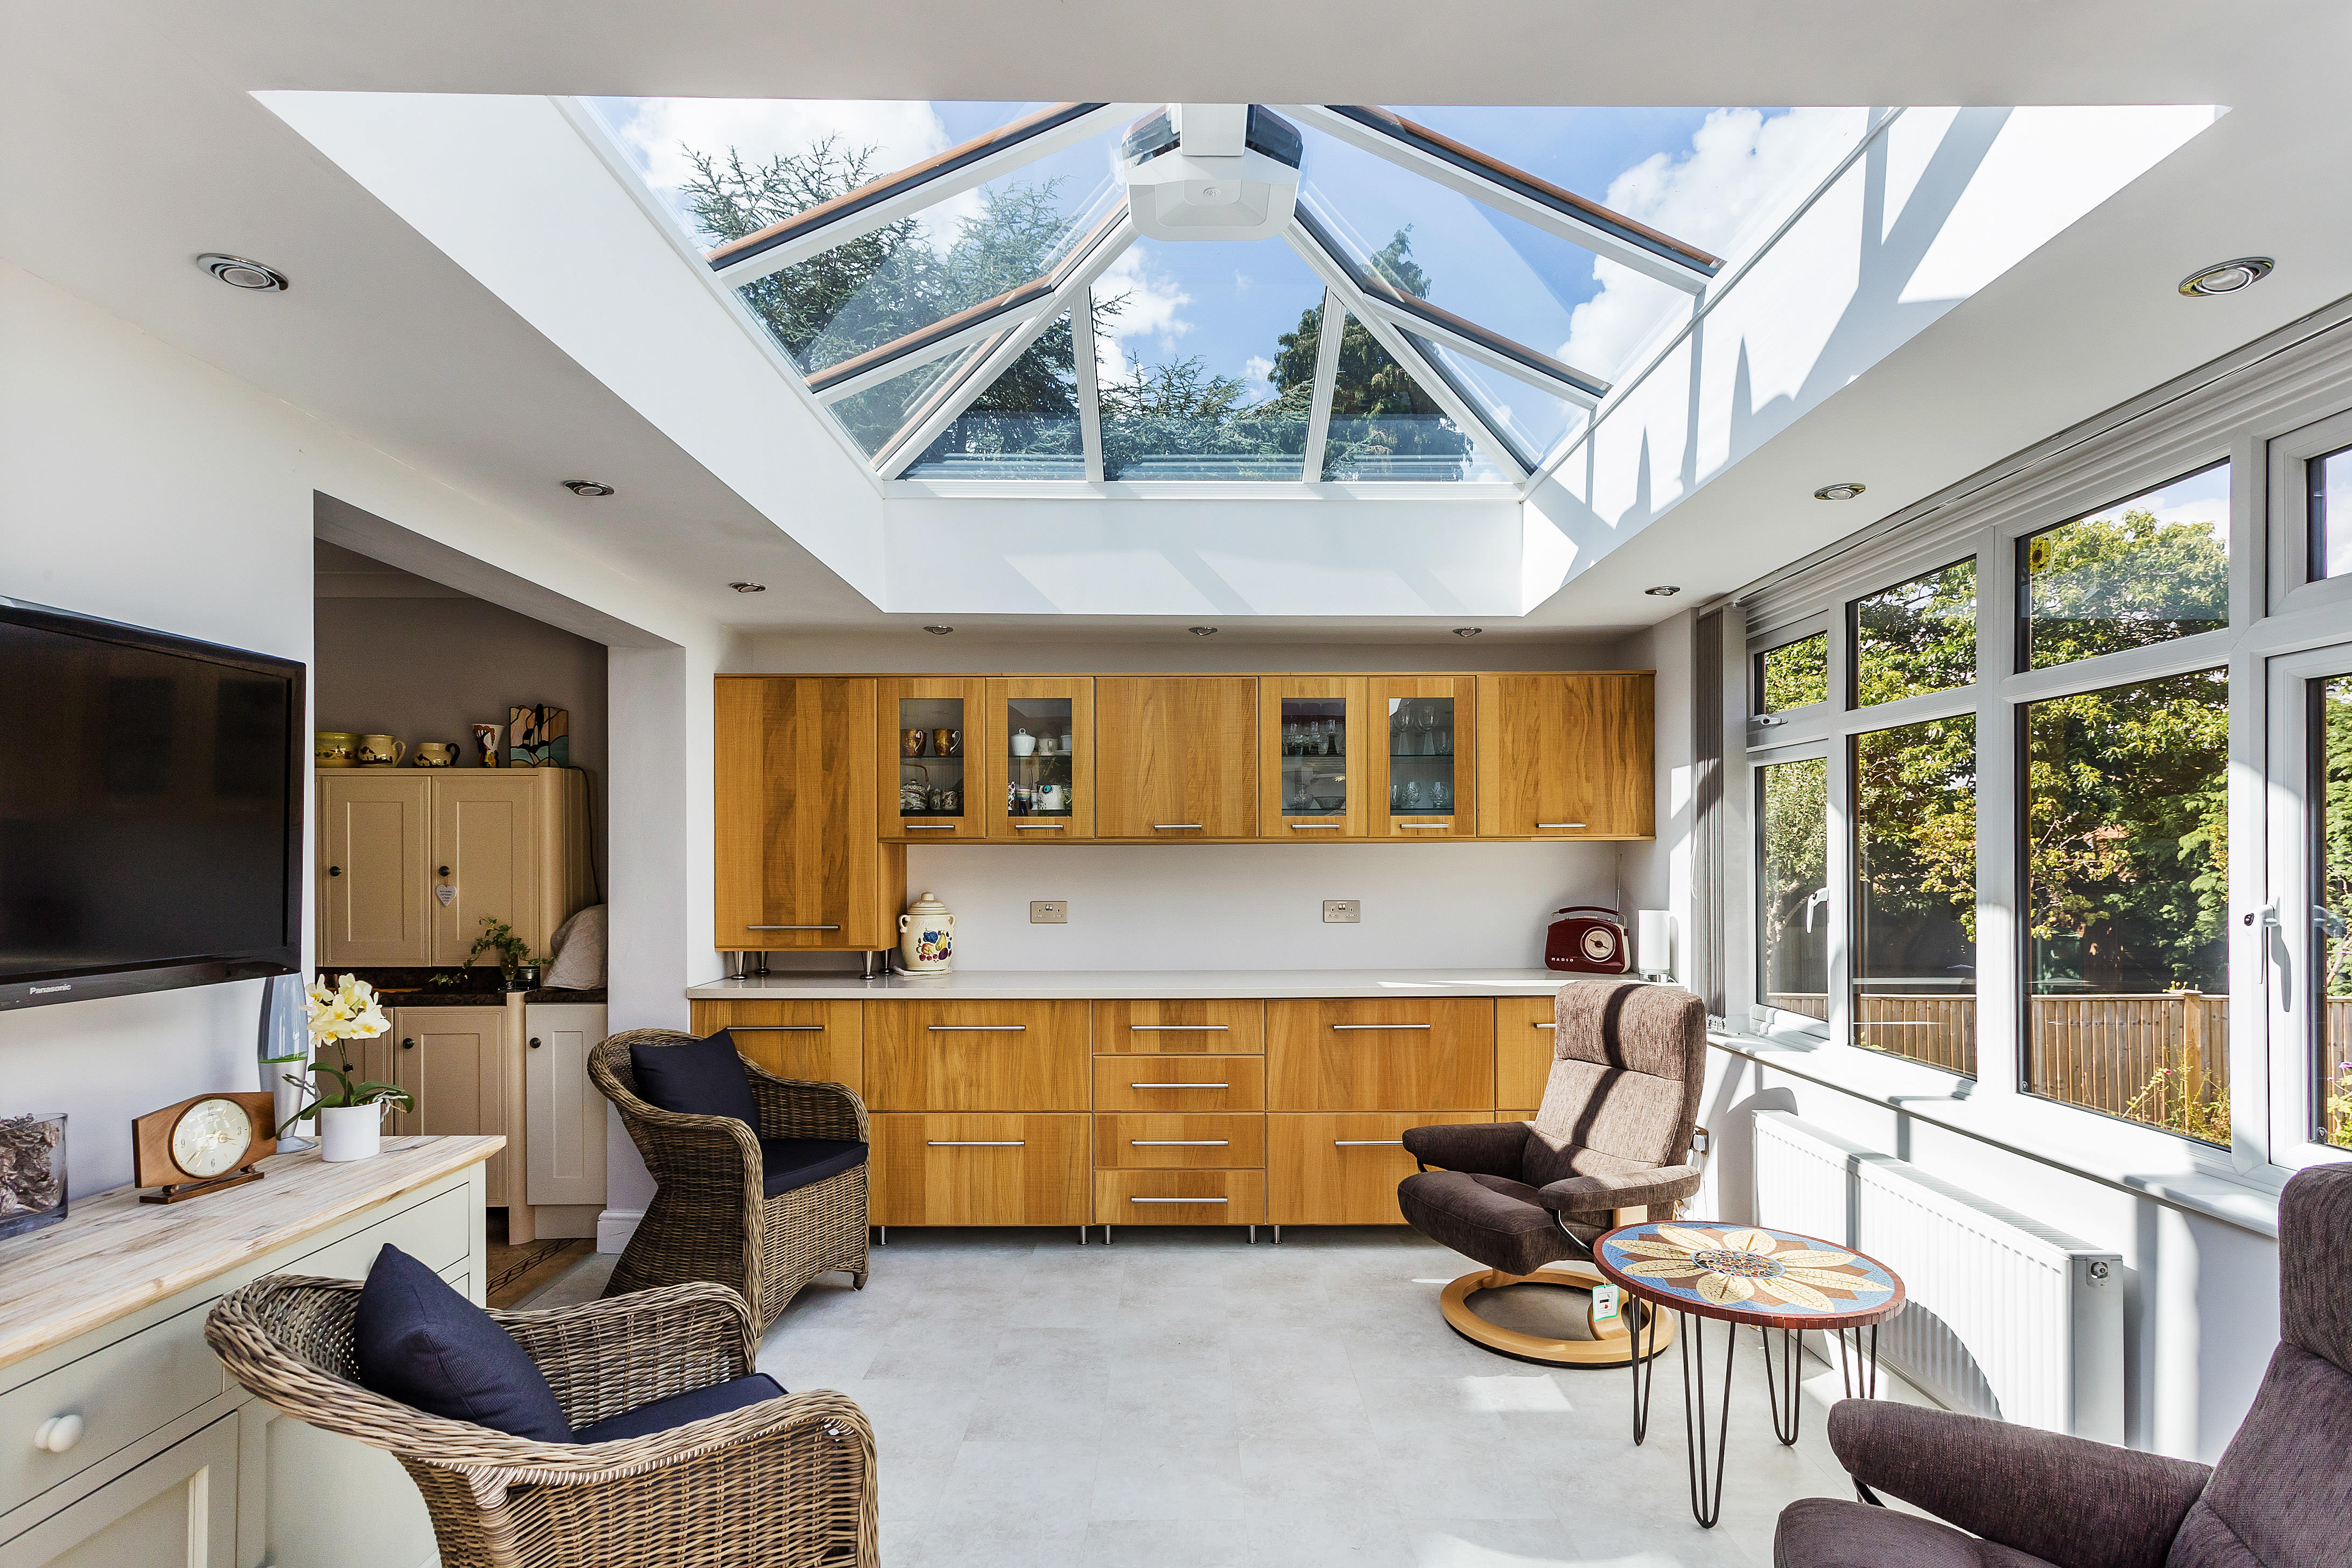 House Extensions Croydon | House Extensions Prices Croydon